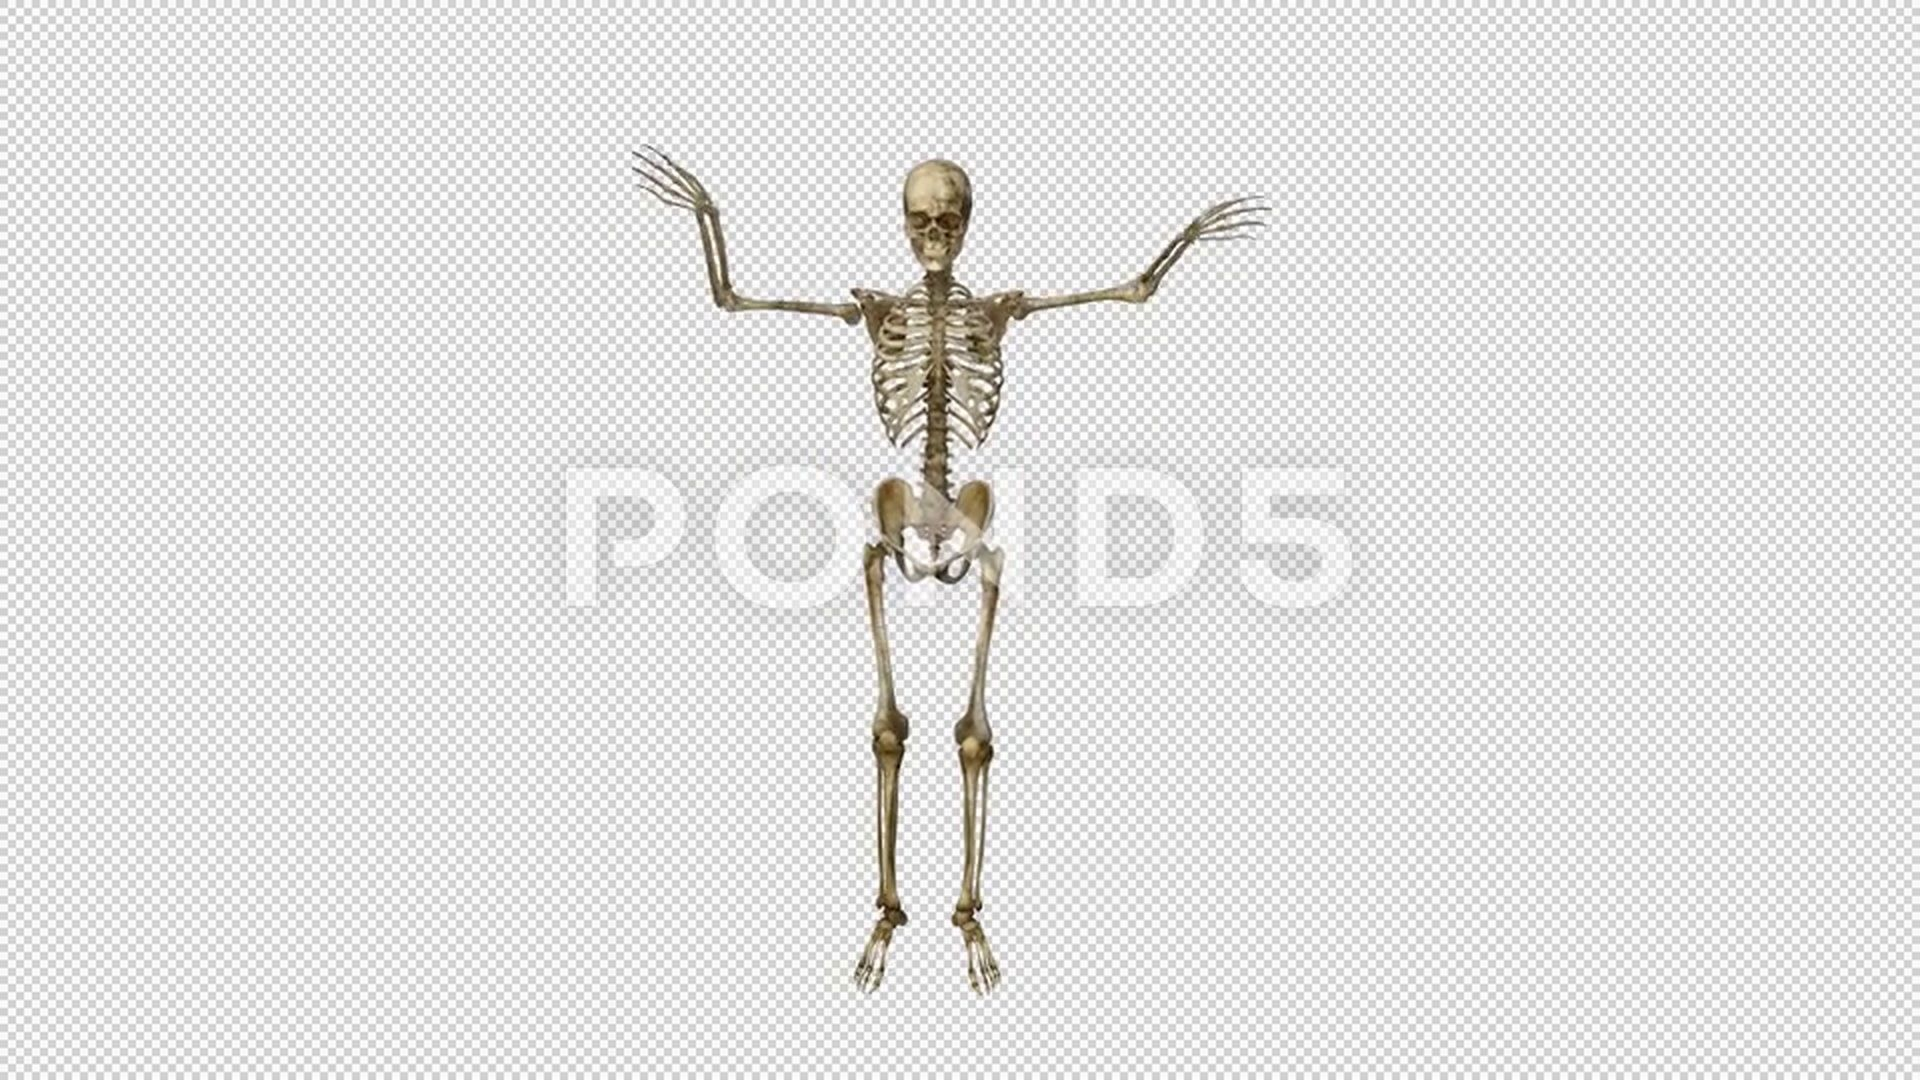 Skeleton Dancing Hip Hop Animation Alpha Channel Isolated Stock